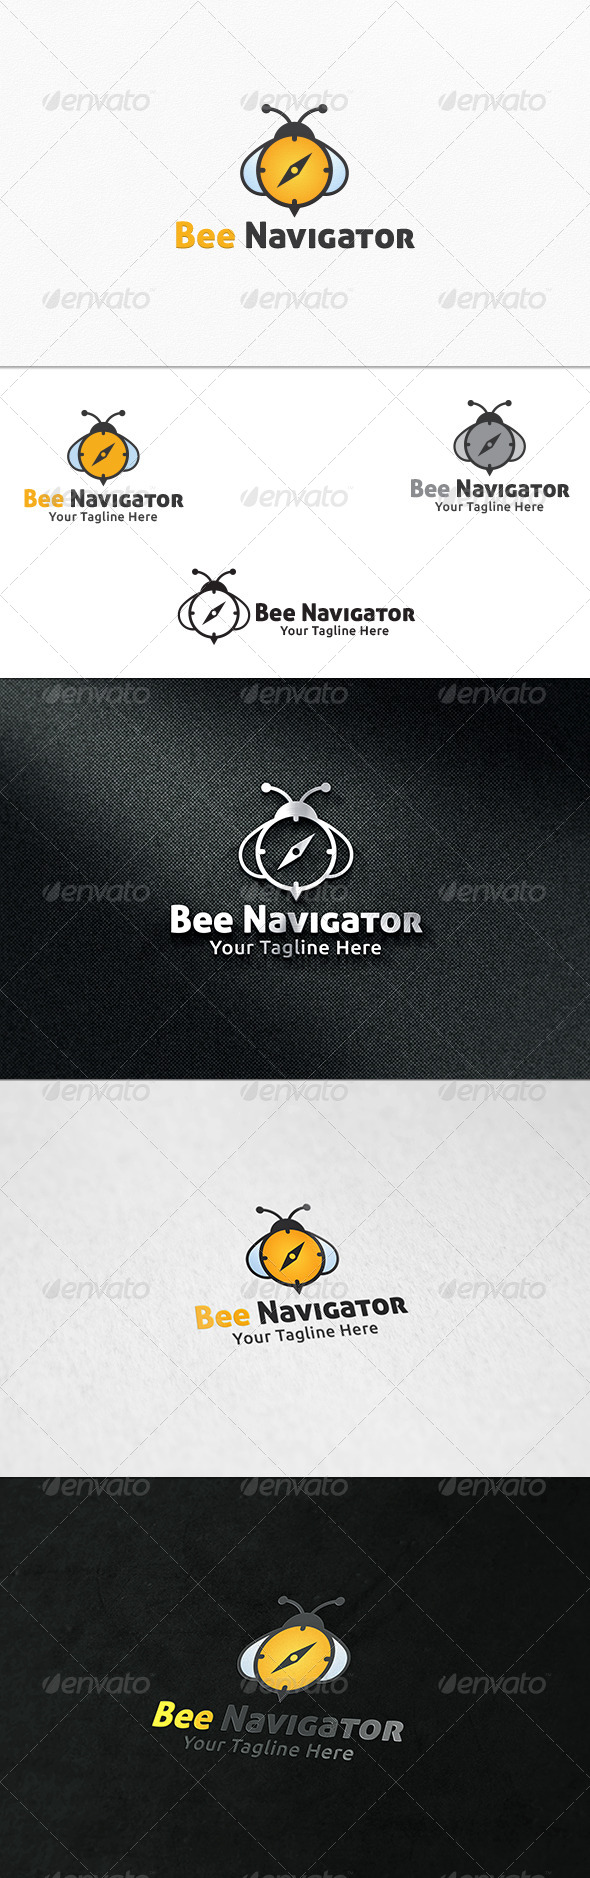 GraphicRiver Bee Navigator Logo Template 7489154